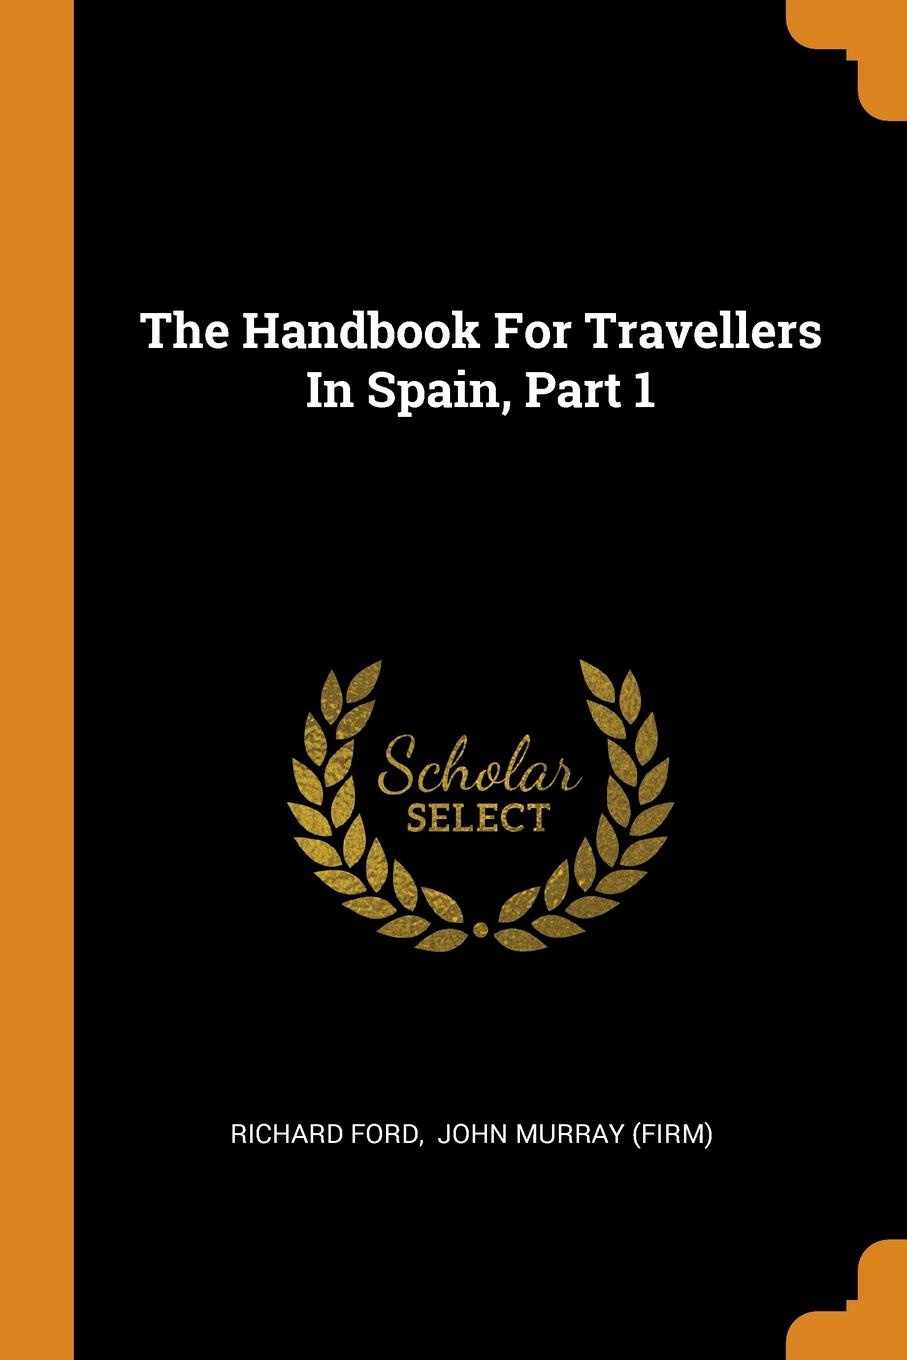 Фото - Richard Ford The Handbook For Travellers In Spain, Part 1 richard ford a handbook for travellers in spain